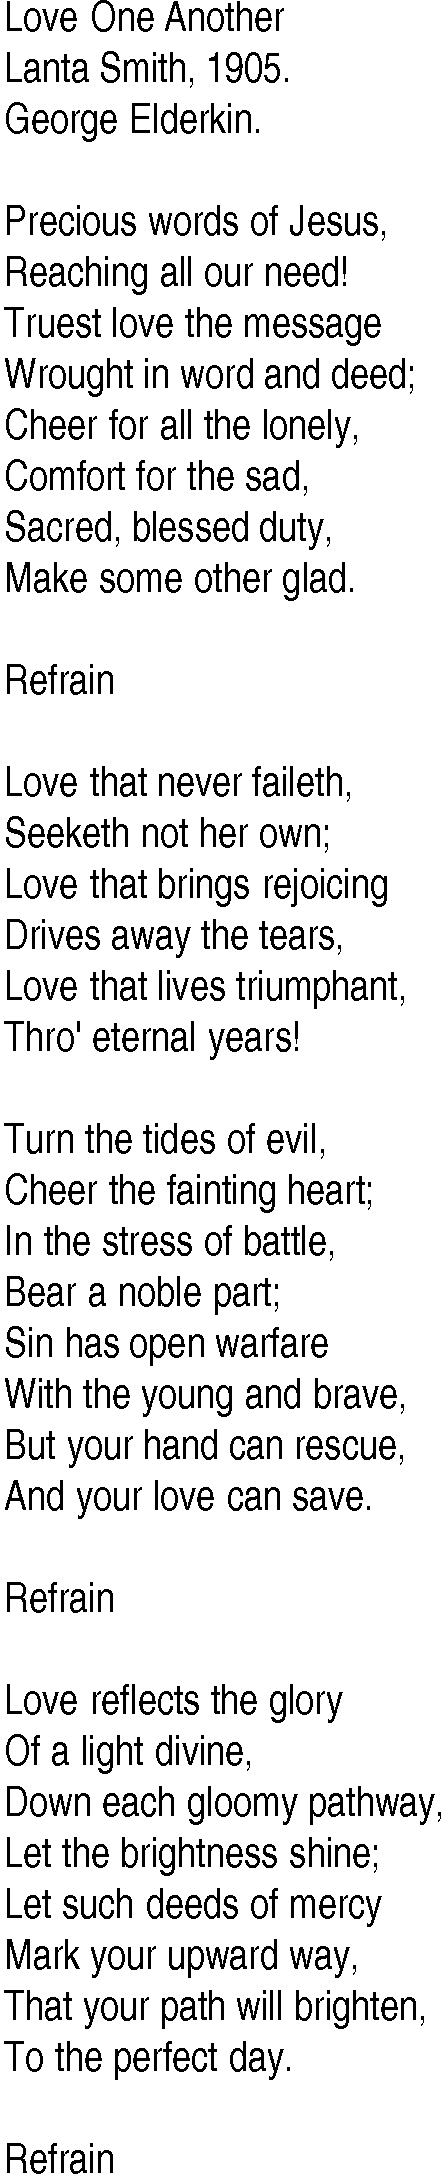 Images Of Love One Another Hymn